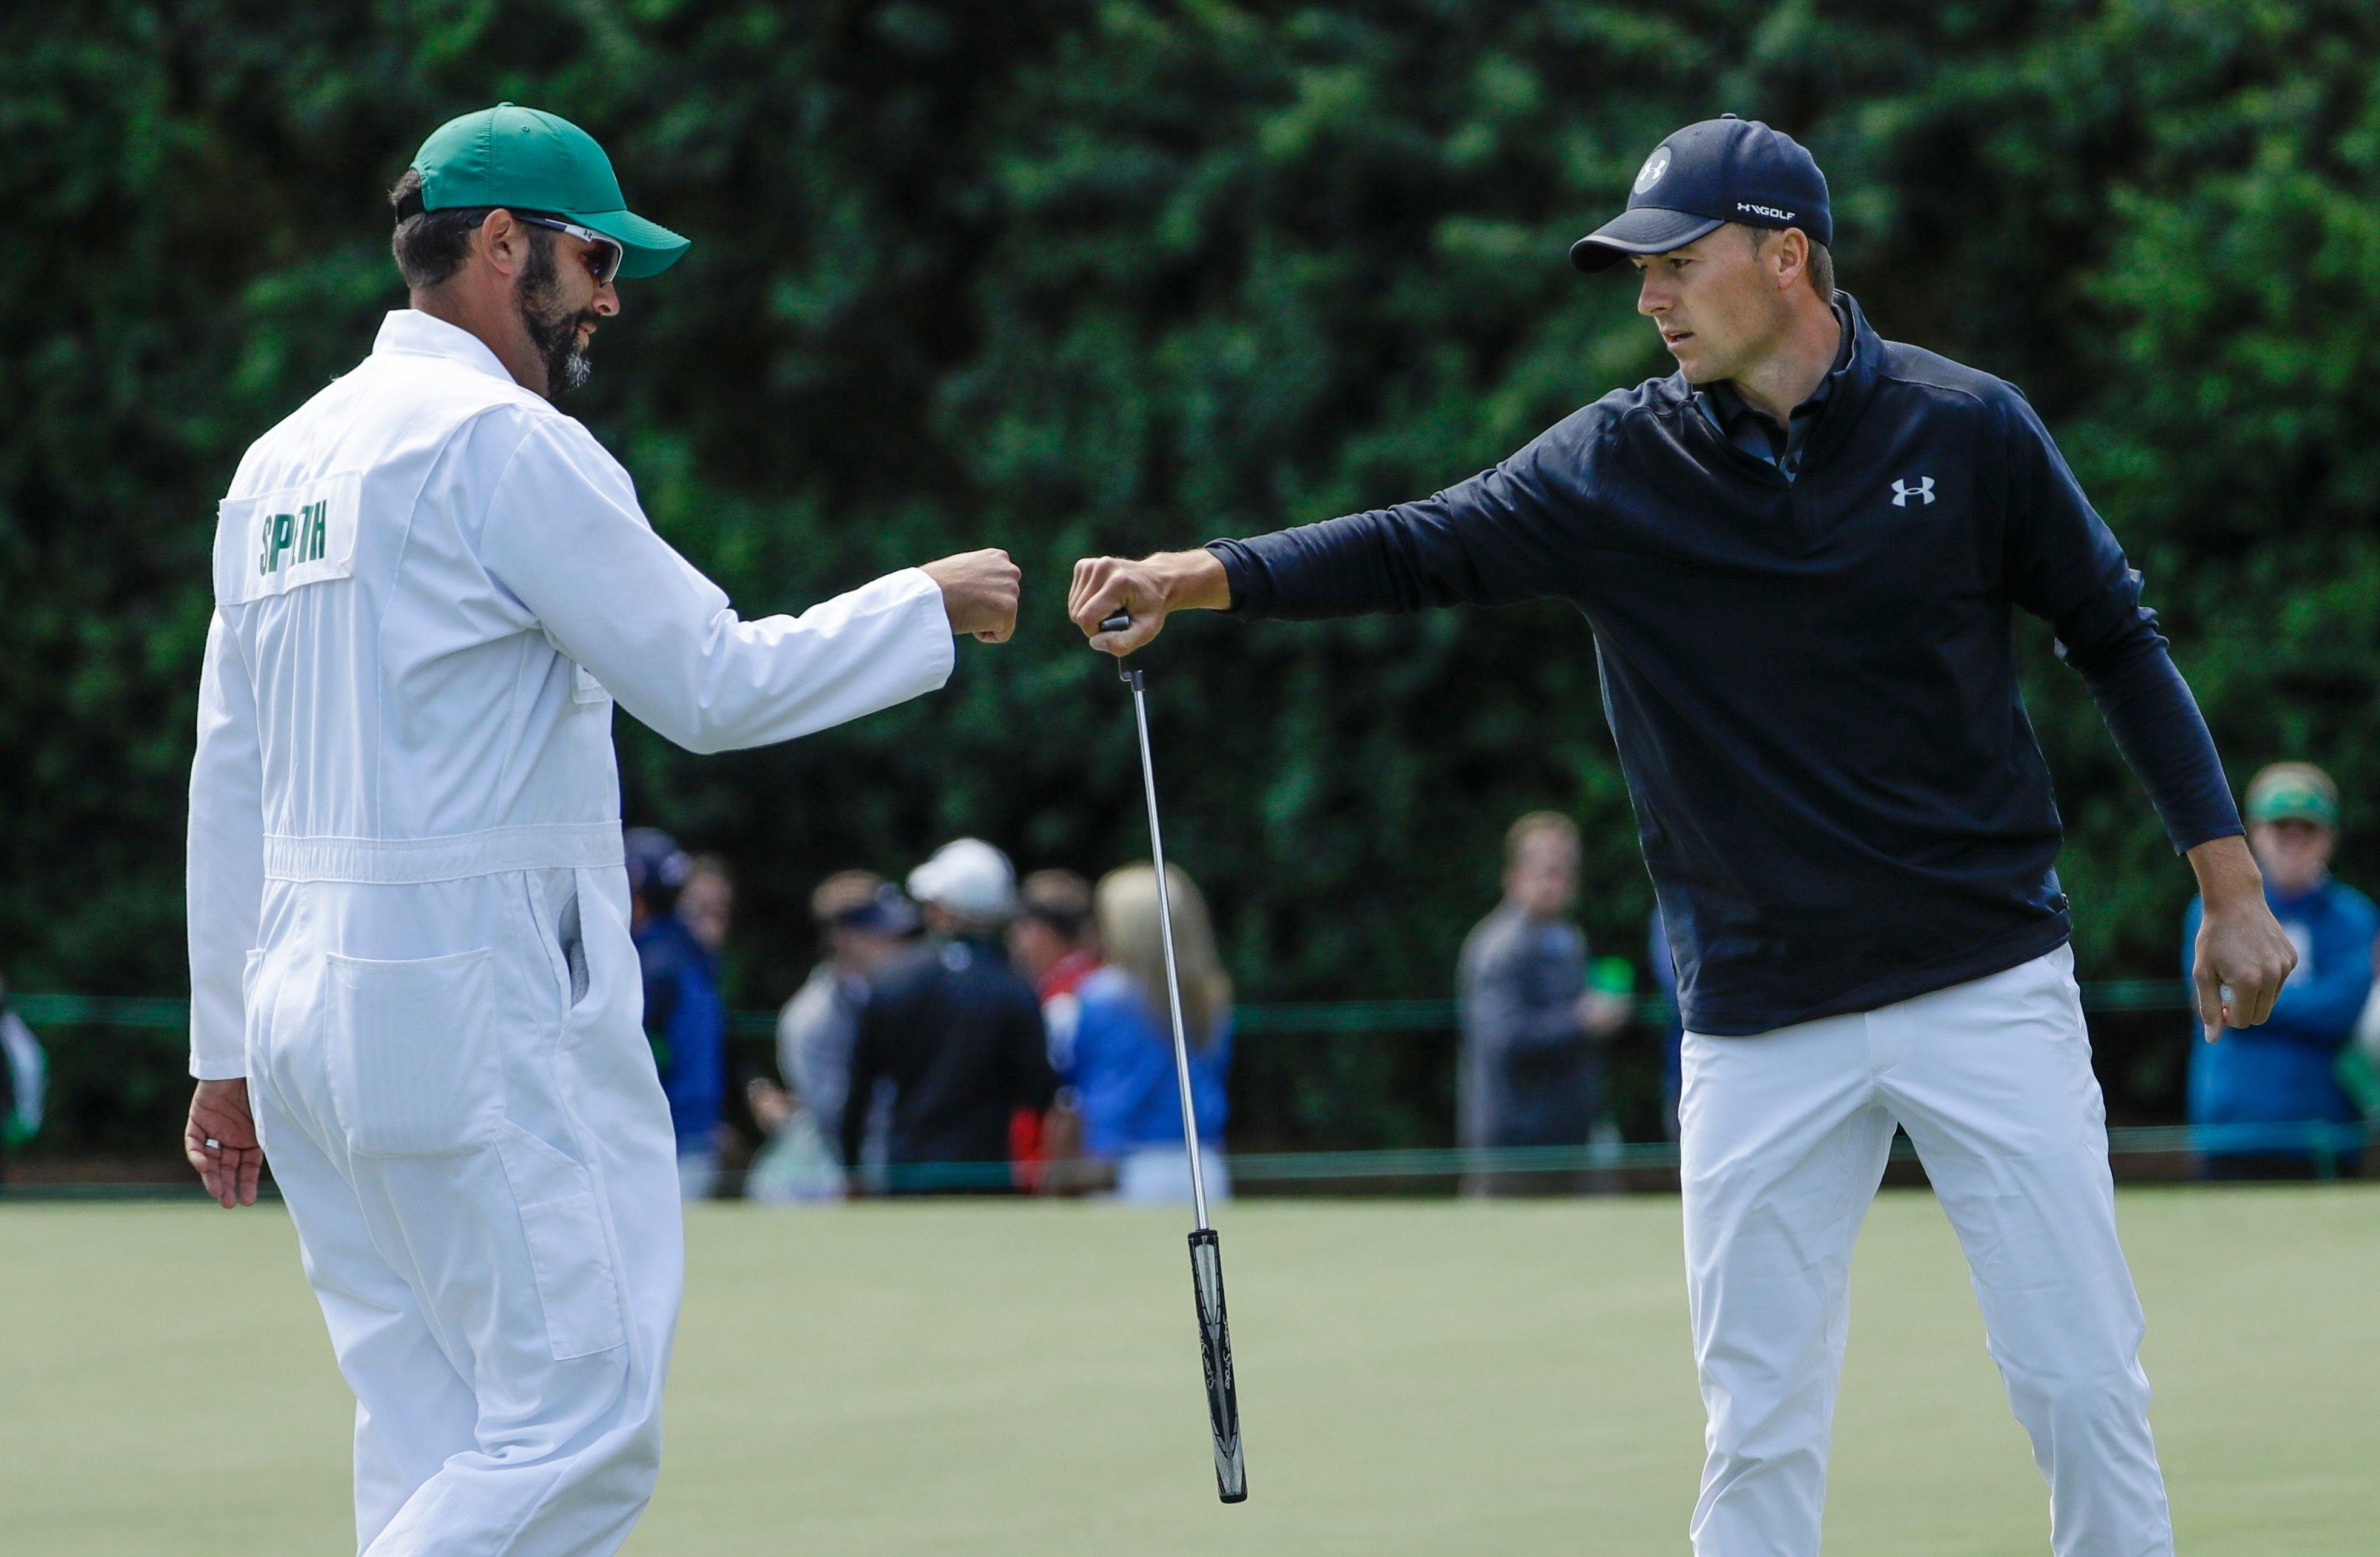 Golf phenom Jordan Spieth offers some tips on how to win